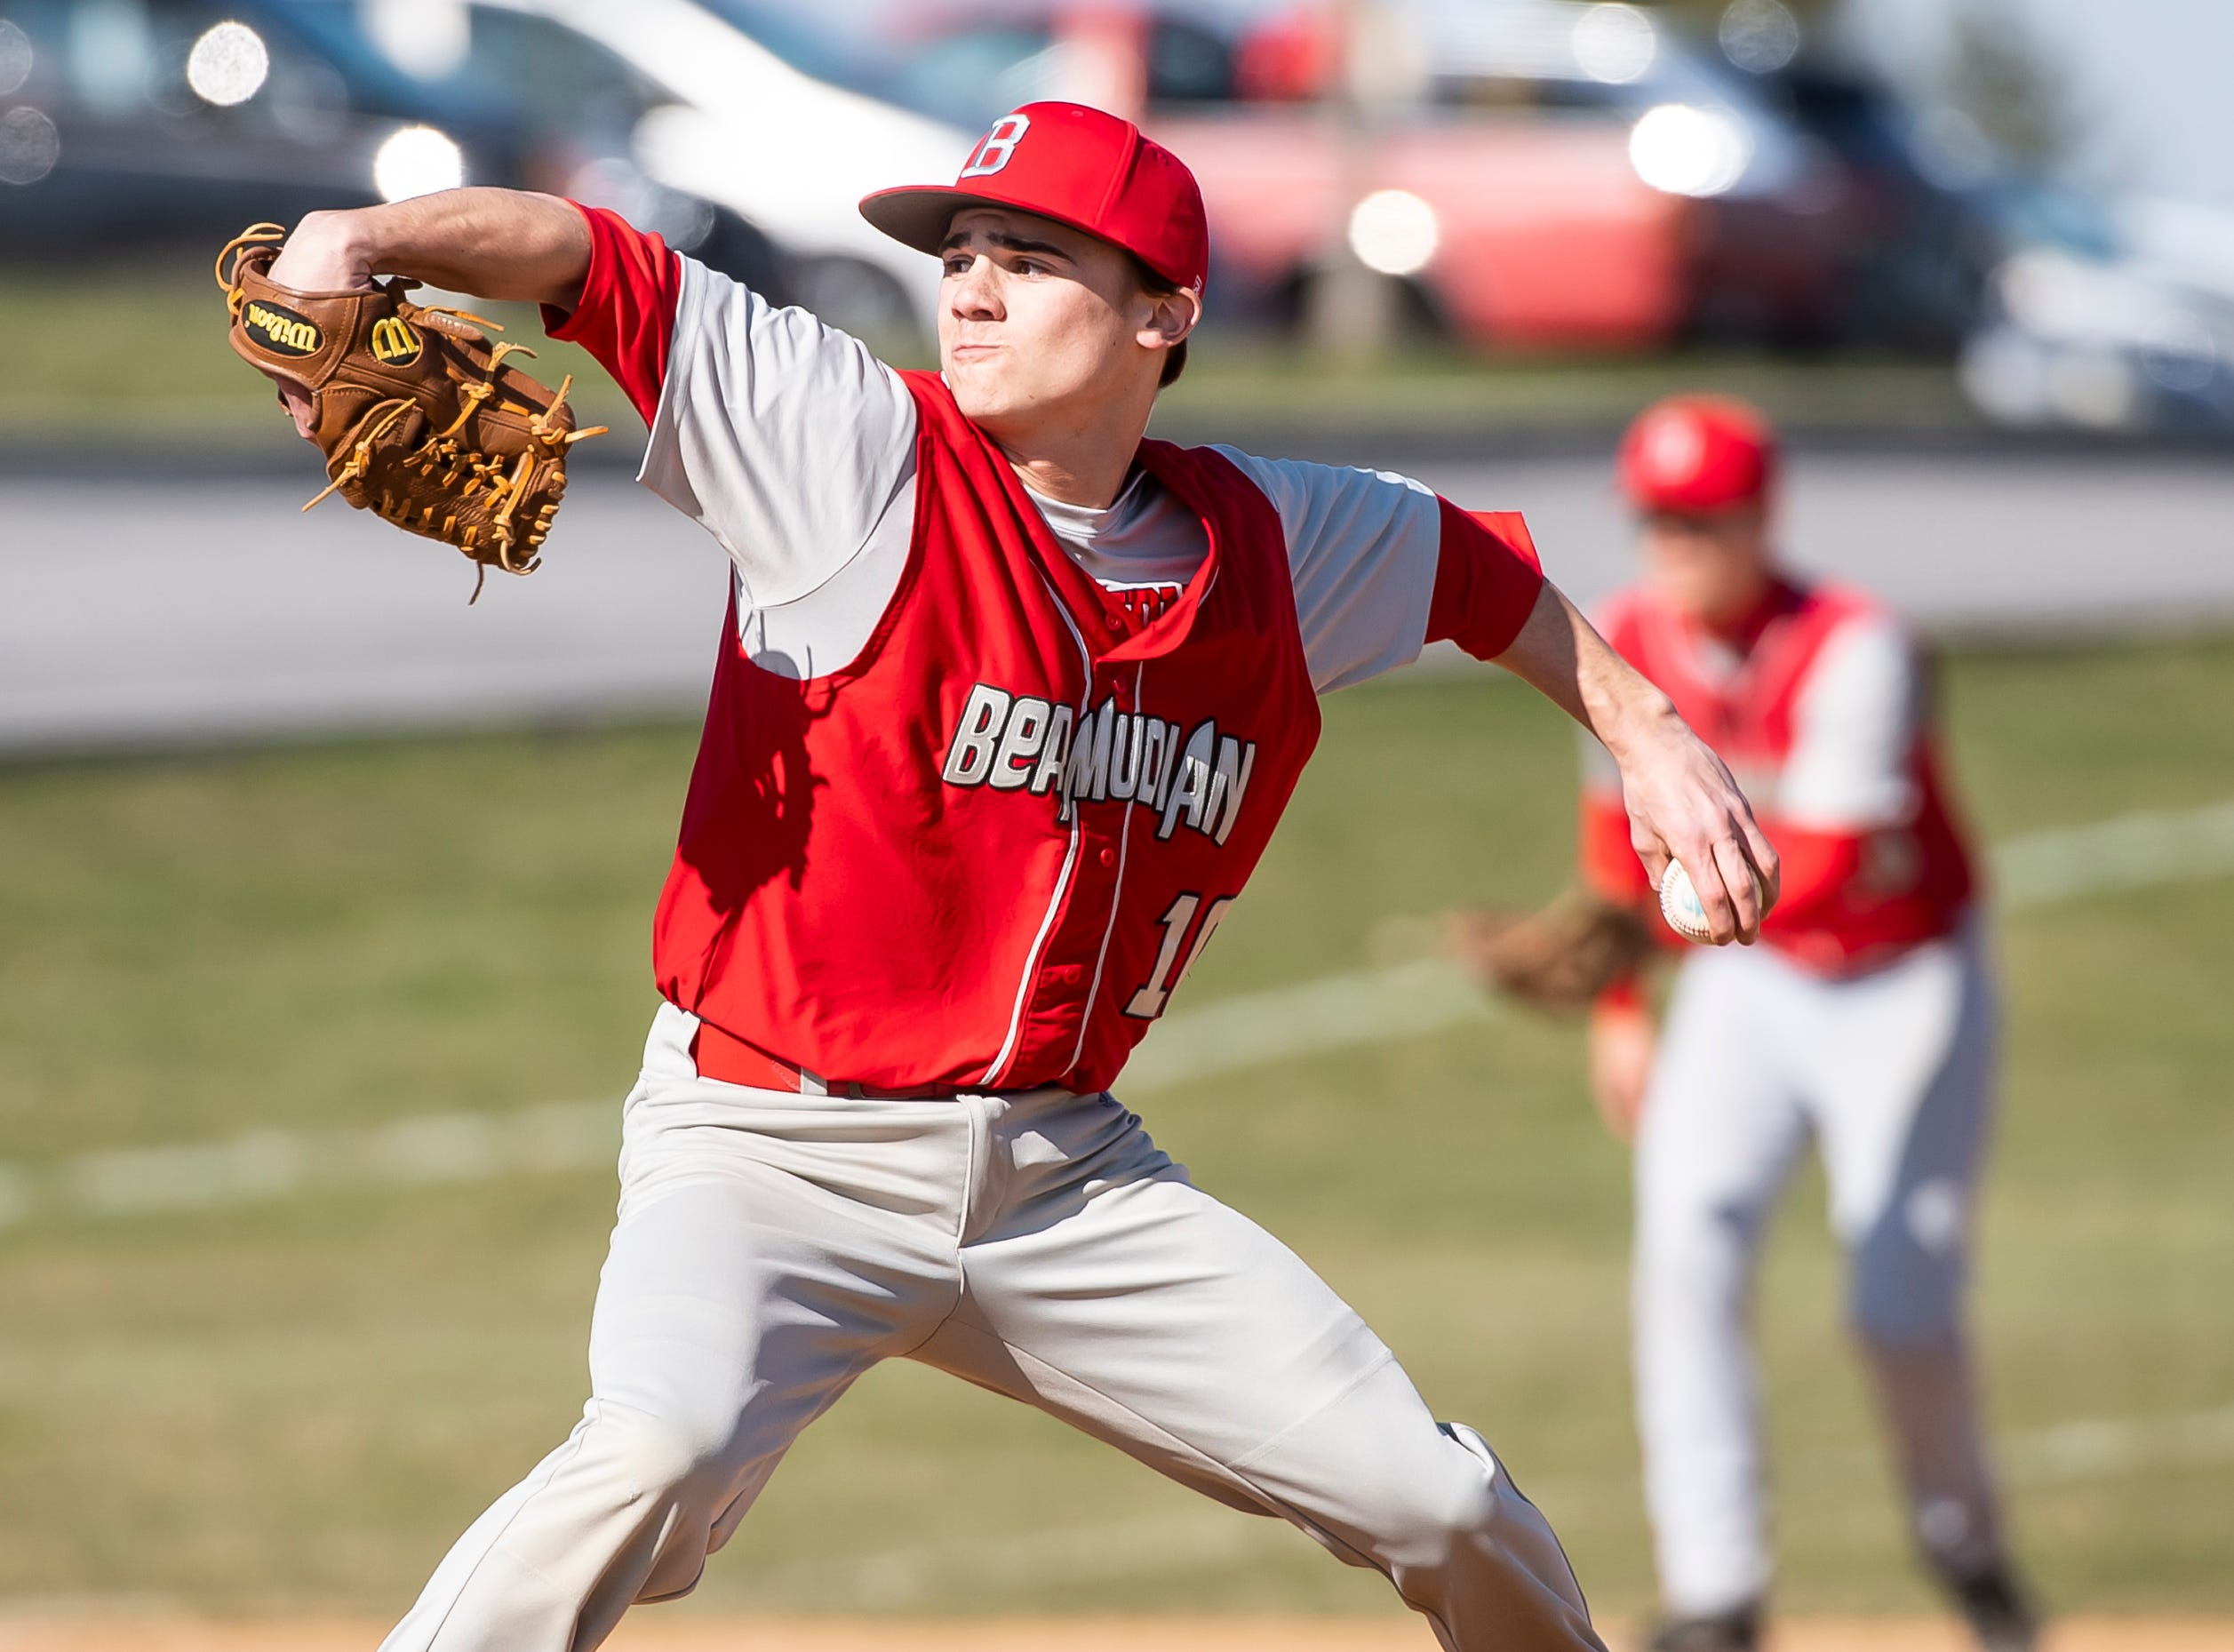 Bermudian Springs starting pitcher Aden Juelich pitches to West York during a YAIAA baseball game in York Springs on Wednesday, April 3, 2019. The Eagles fell 14-11.